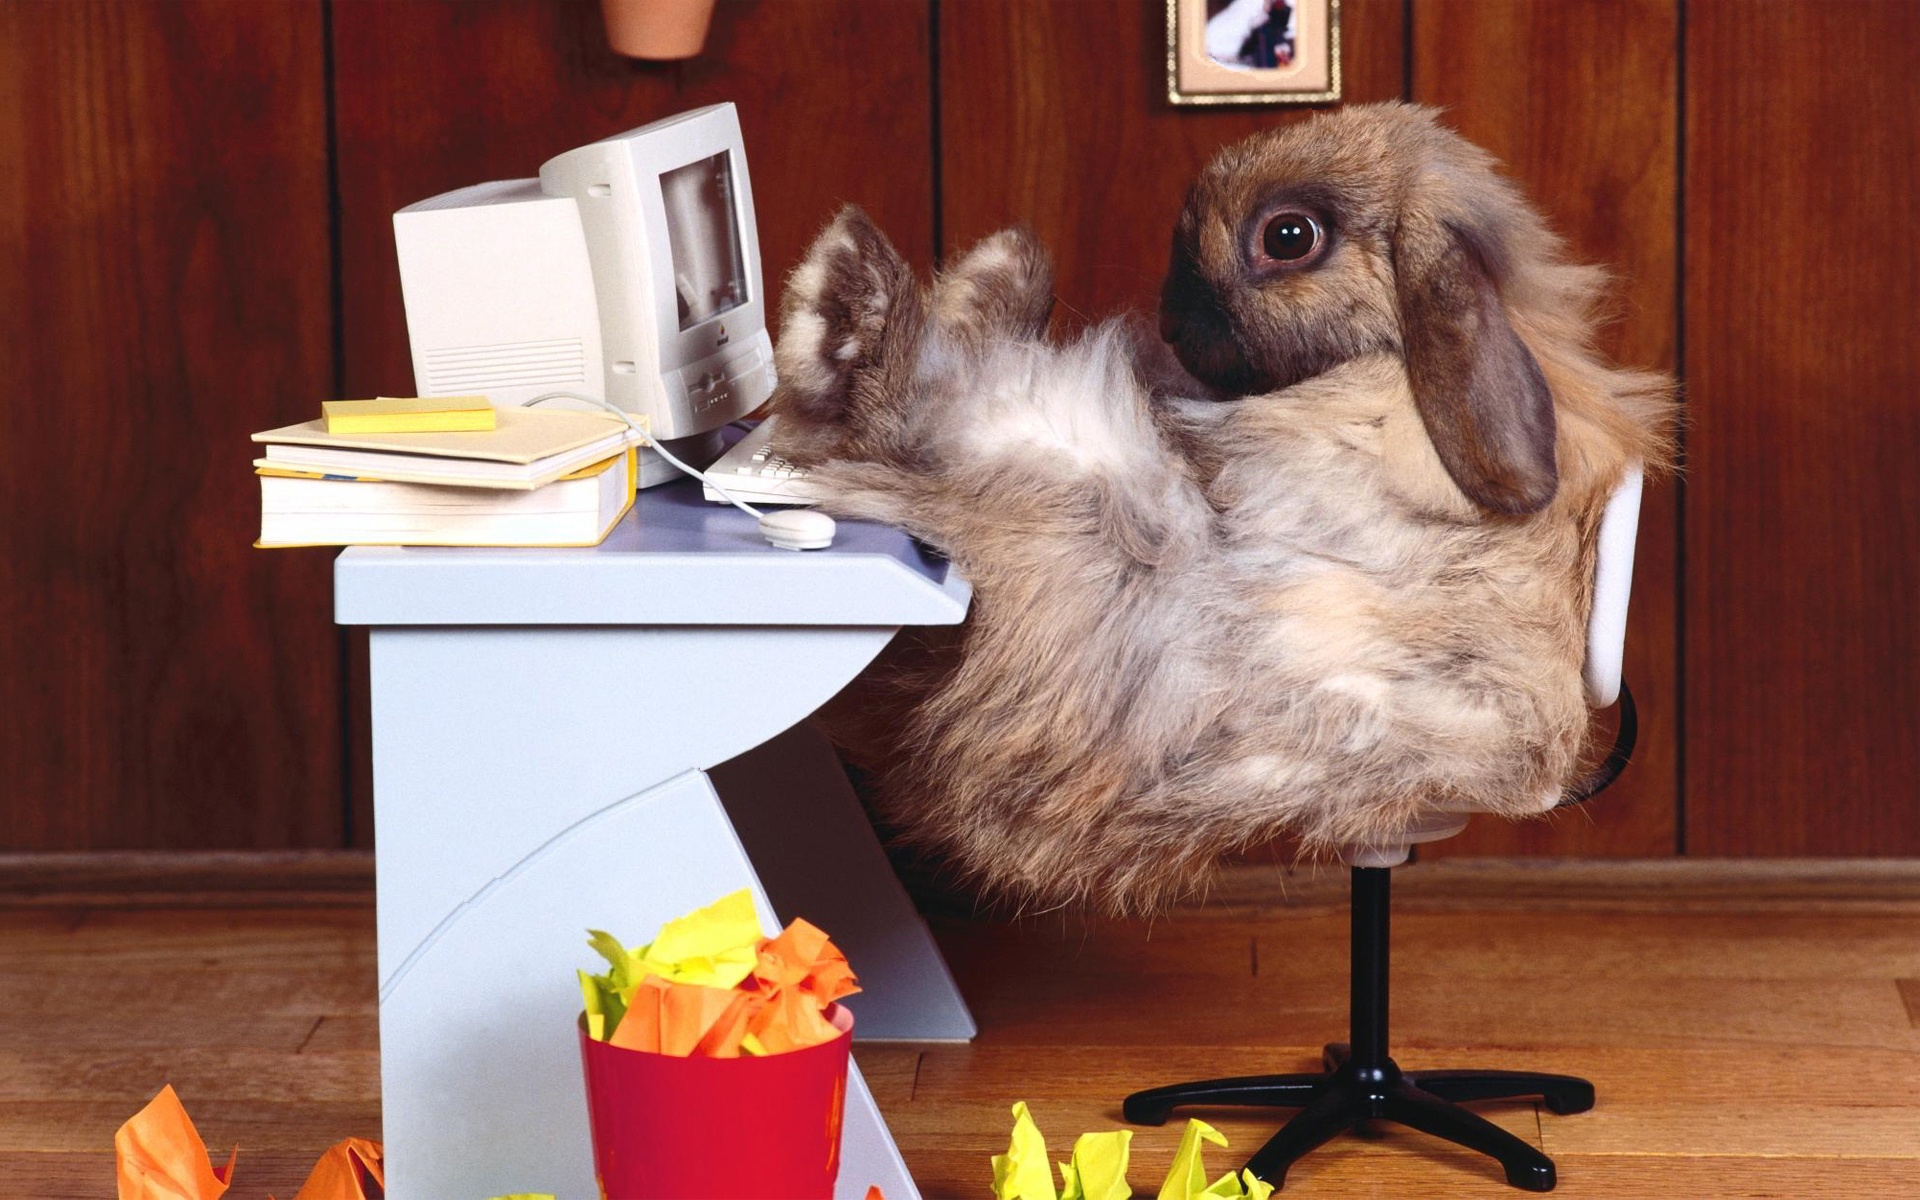 animals rabbits tech computer funny office